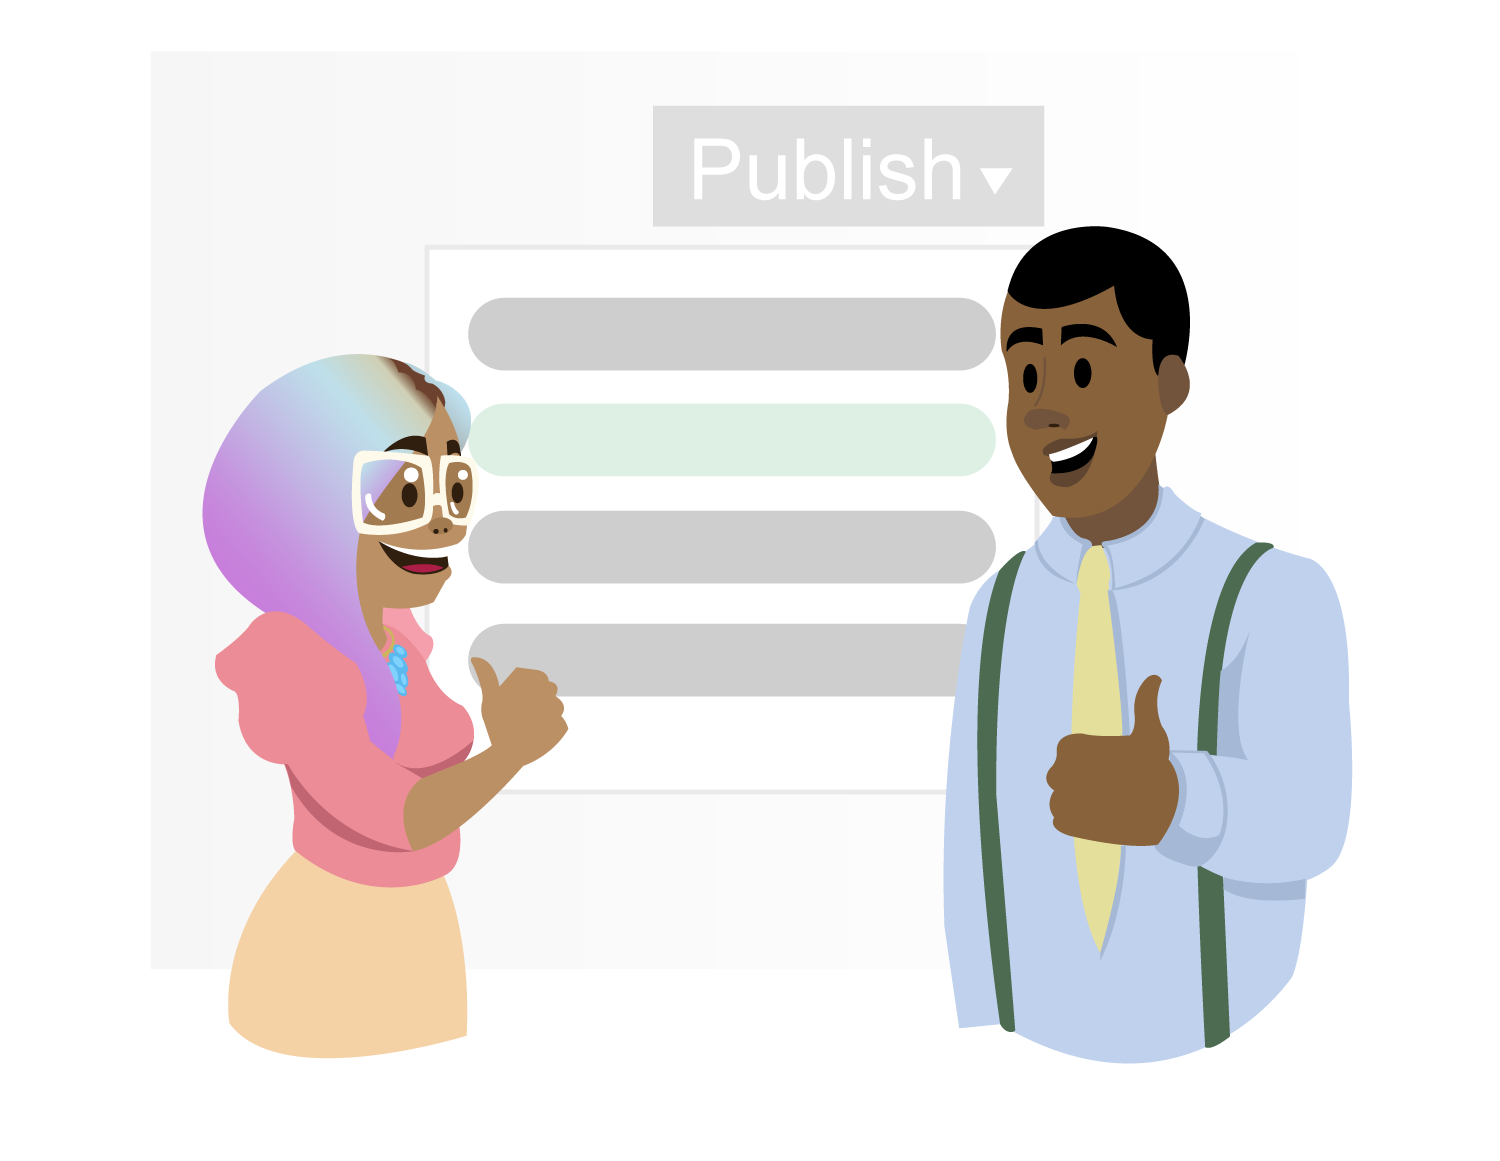 Publish as a template